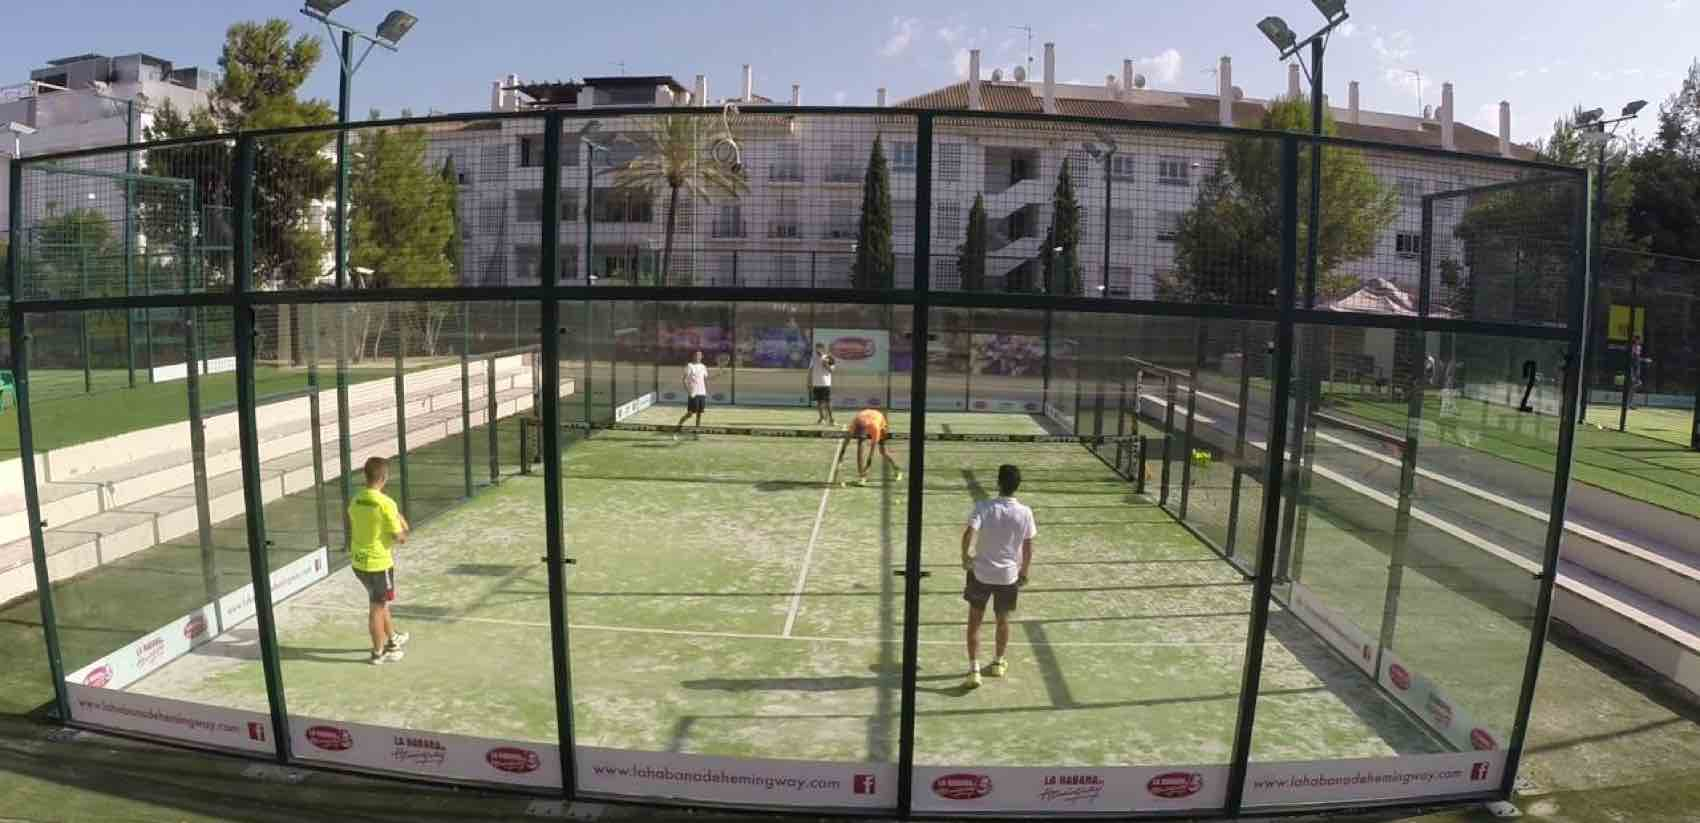 Padel tennis cour at Real Club in Marbella